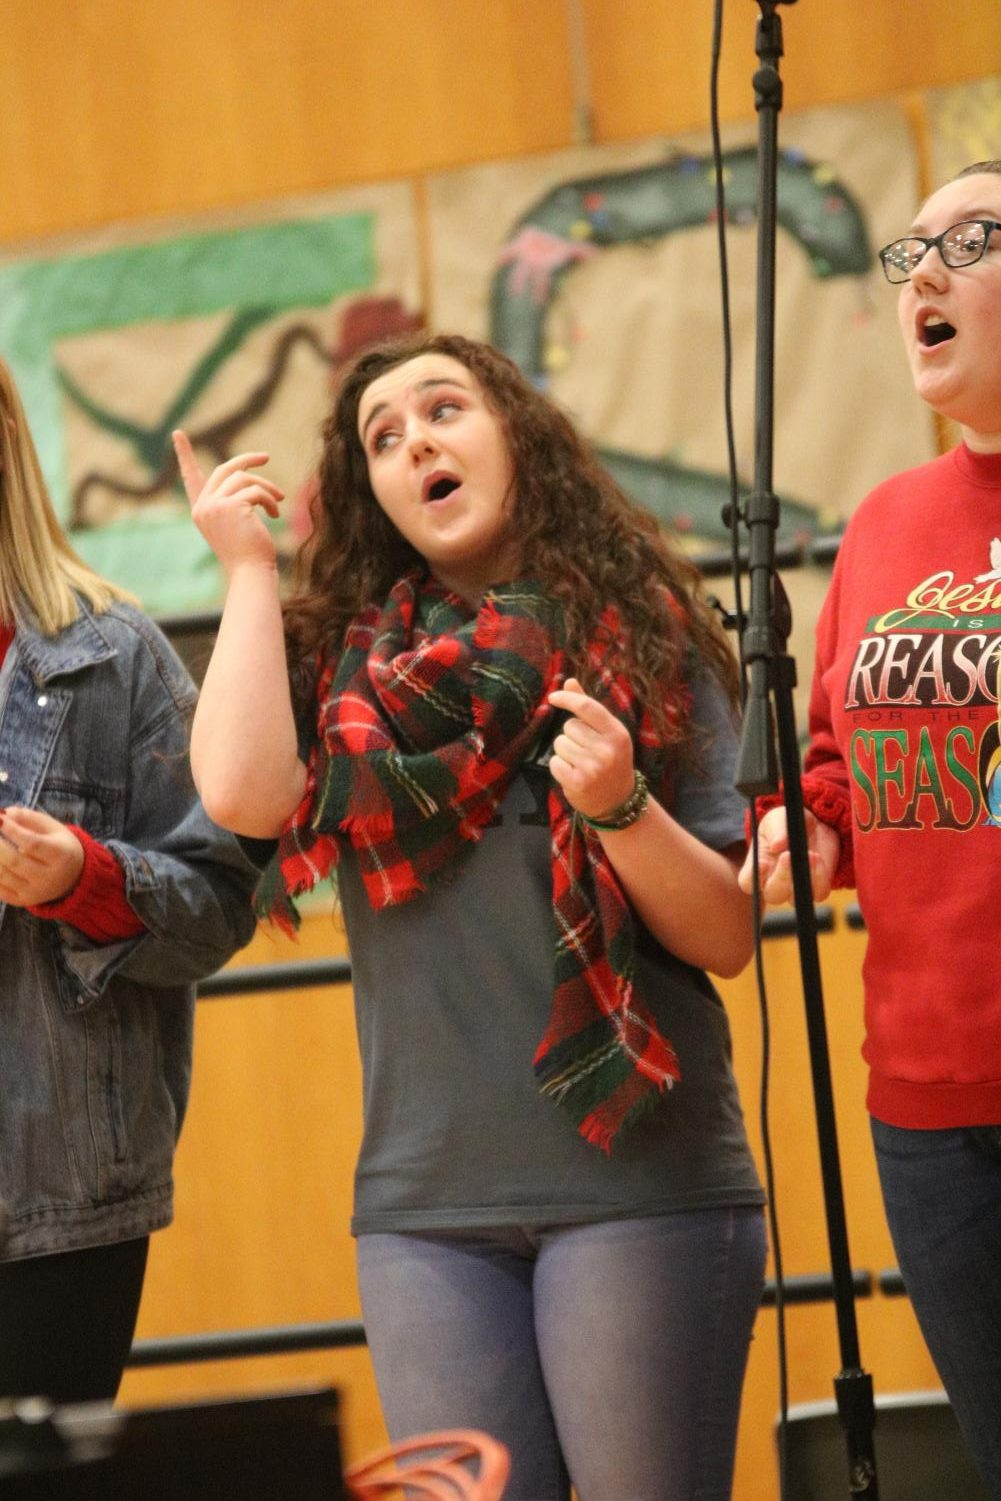 Senior Jenna Maher sings with holiday joy at the 2019 holiday Concert. On Dec. 22 the Fenton Ambassadors and Jazz Band performed in front of students to spread holiday cheer.